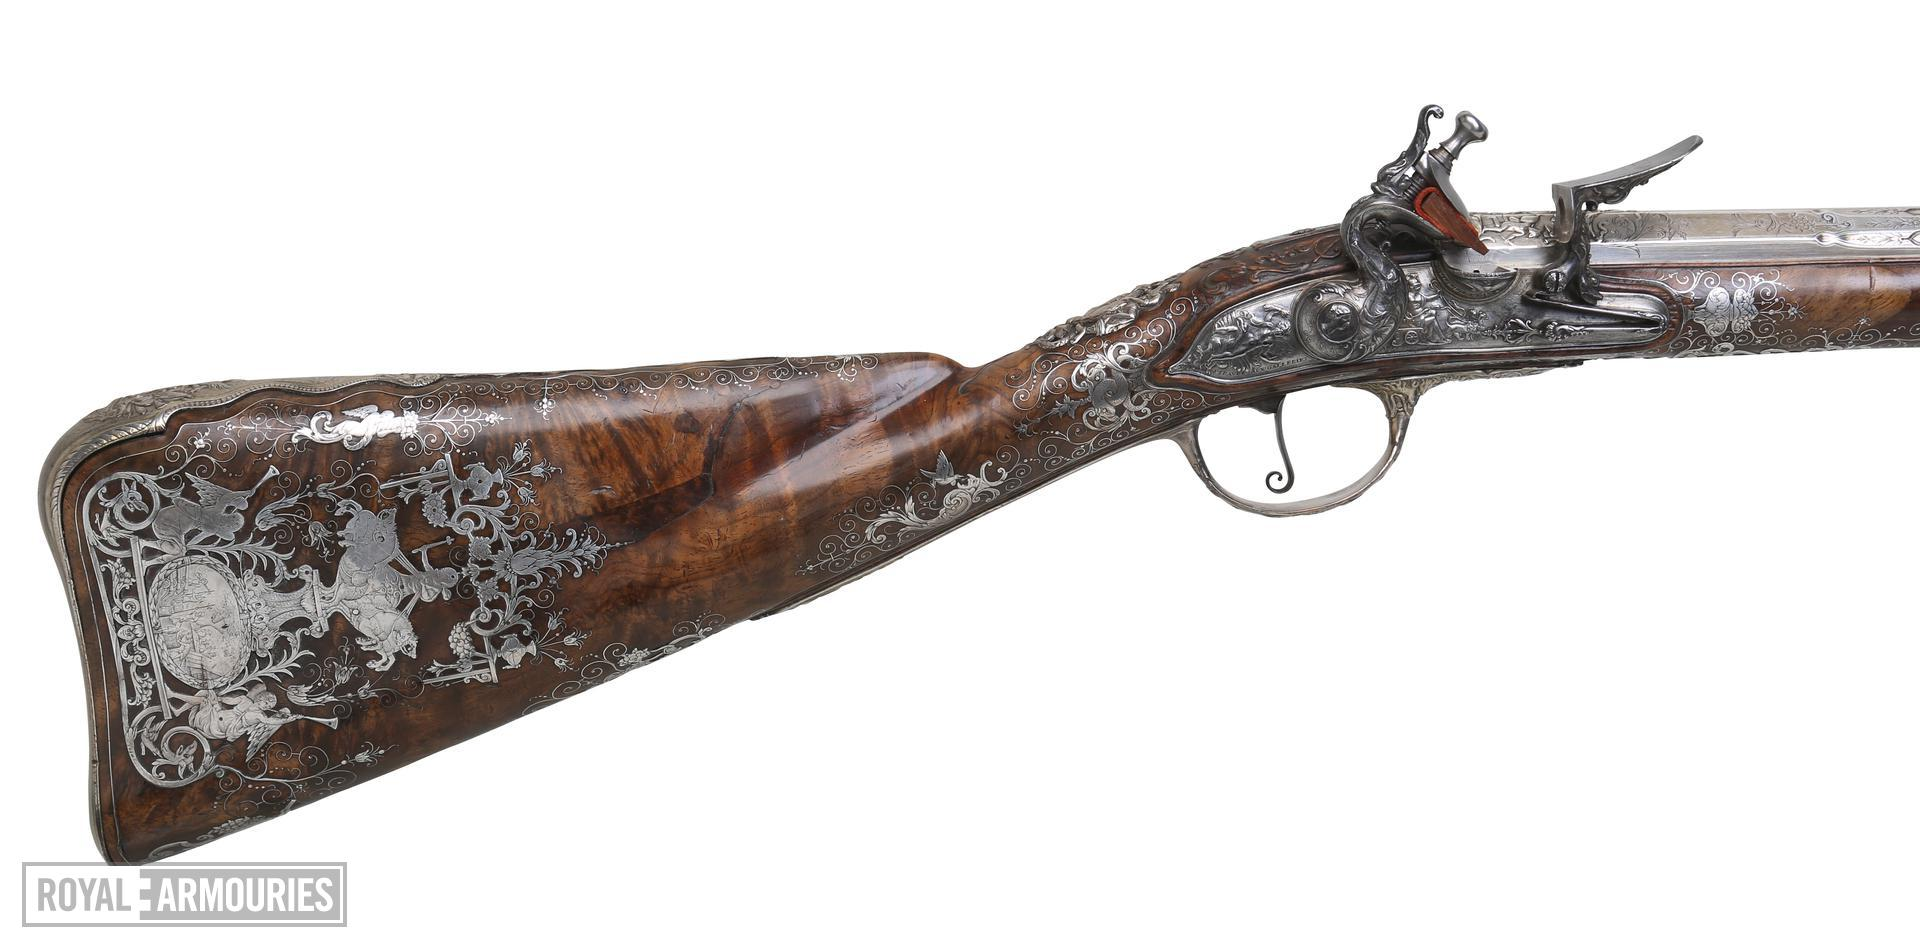 Flintlock muzzle-loading sporting gun - By Bertrand Piraube